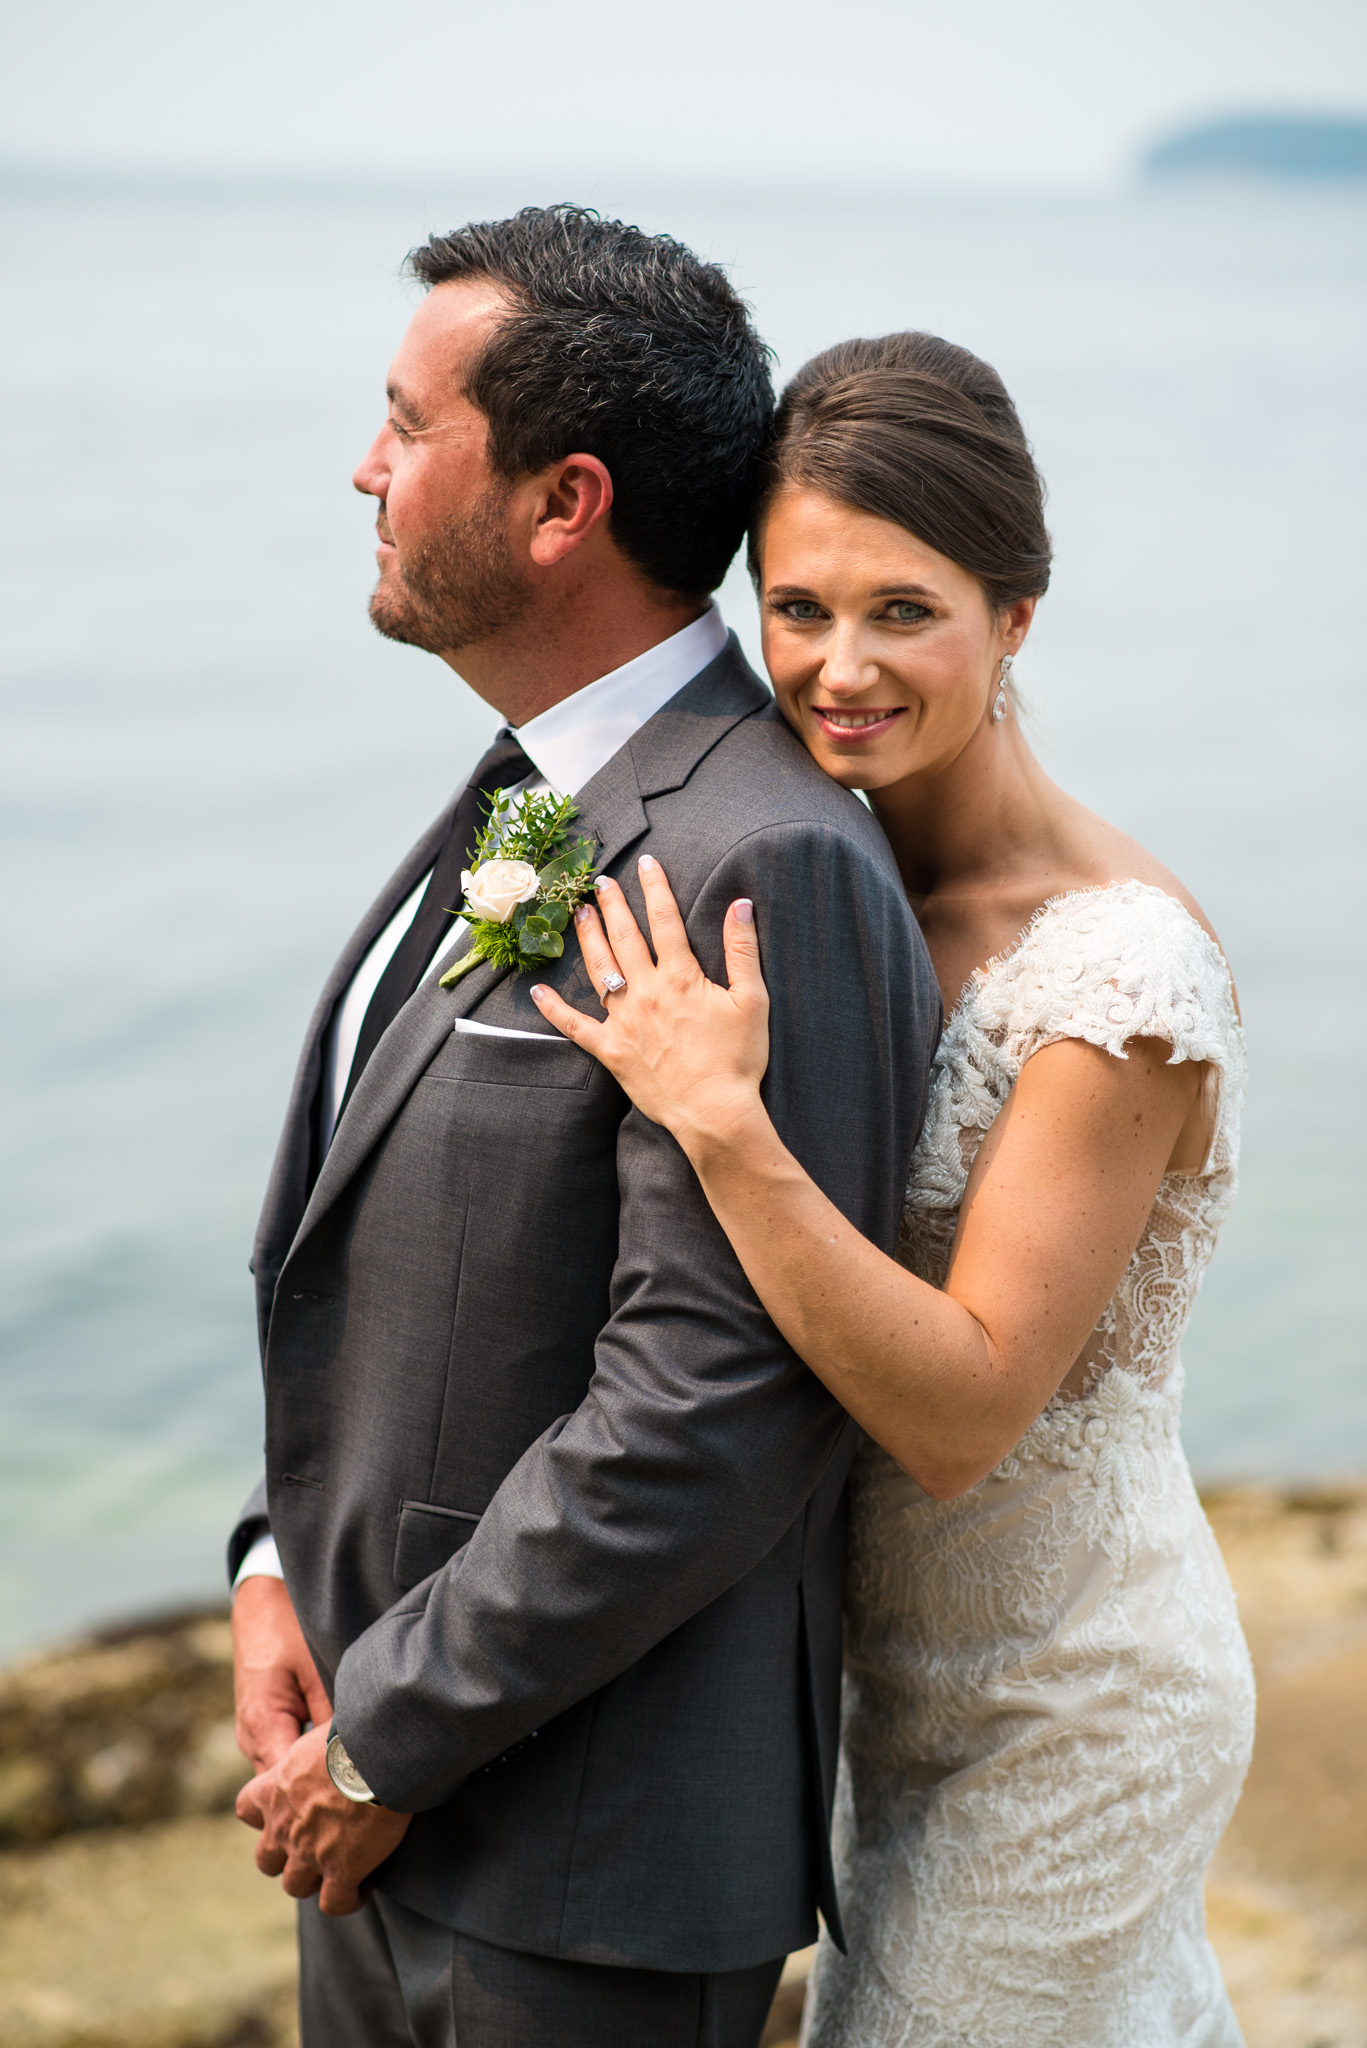 victoria-wedding-photographers-hastings-house-wedding-saltspring-island-wedding-28.jpg